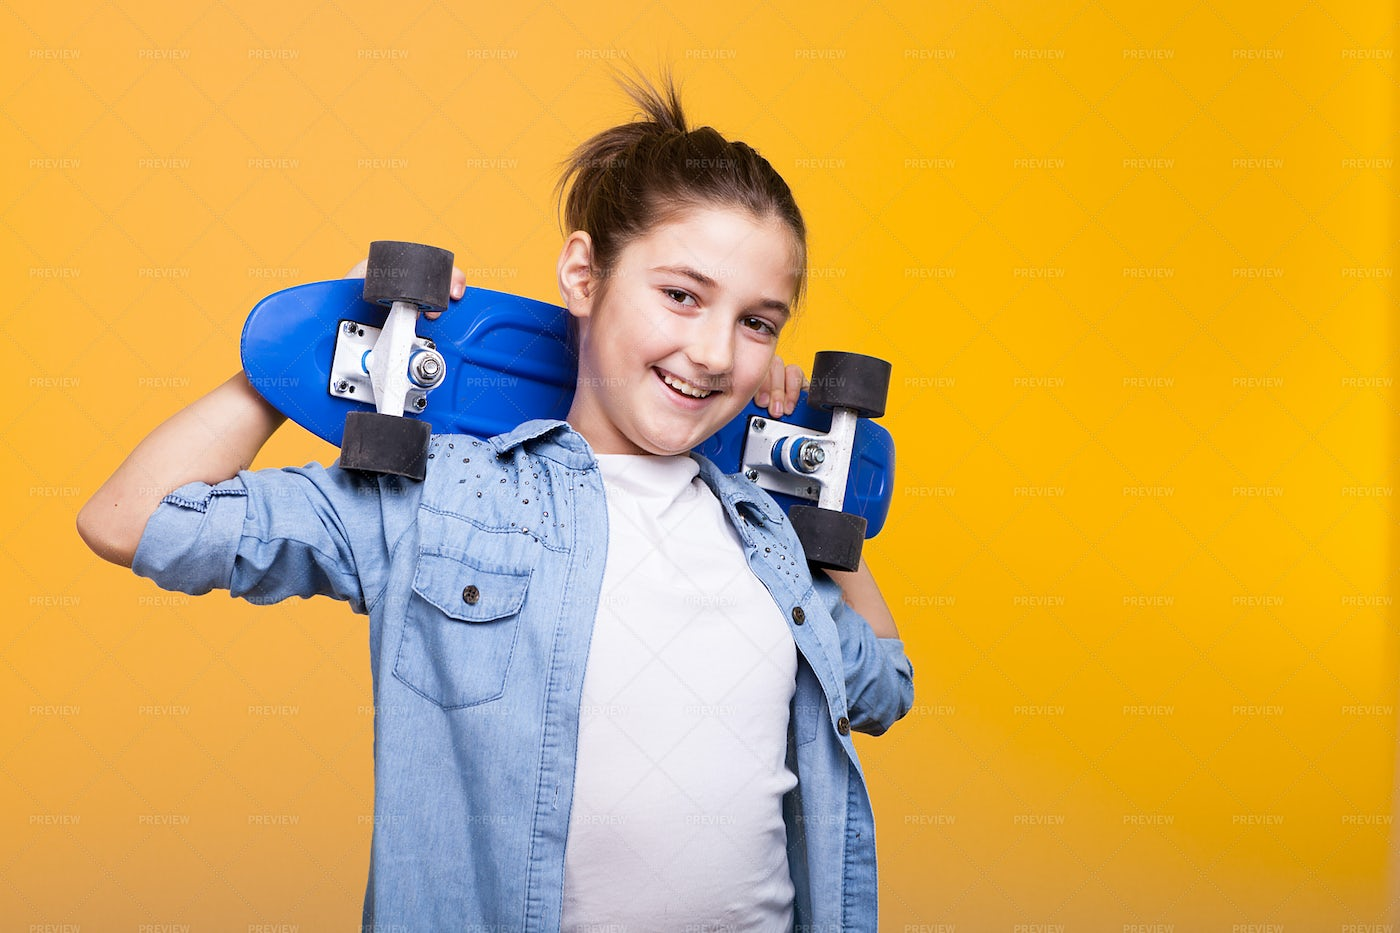 Girl With Penny Board: Stock Photos